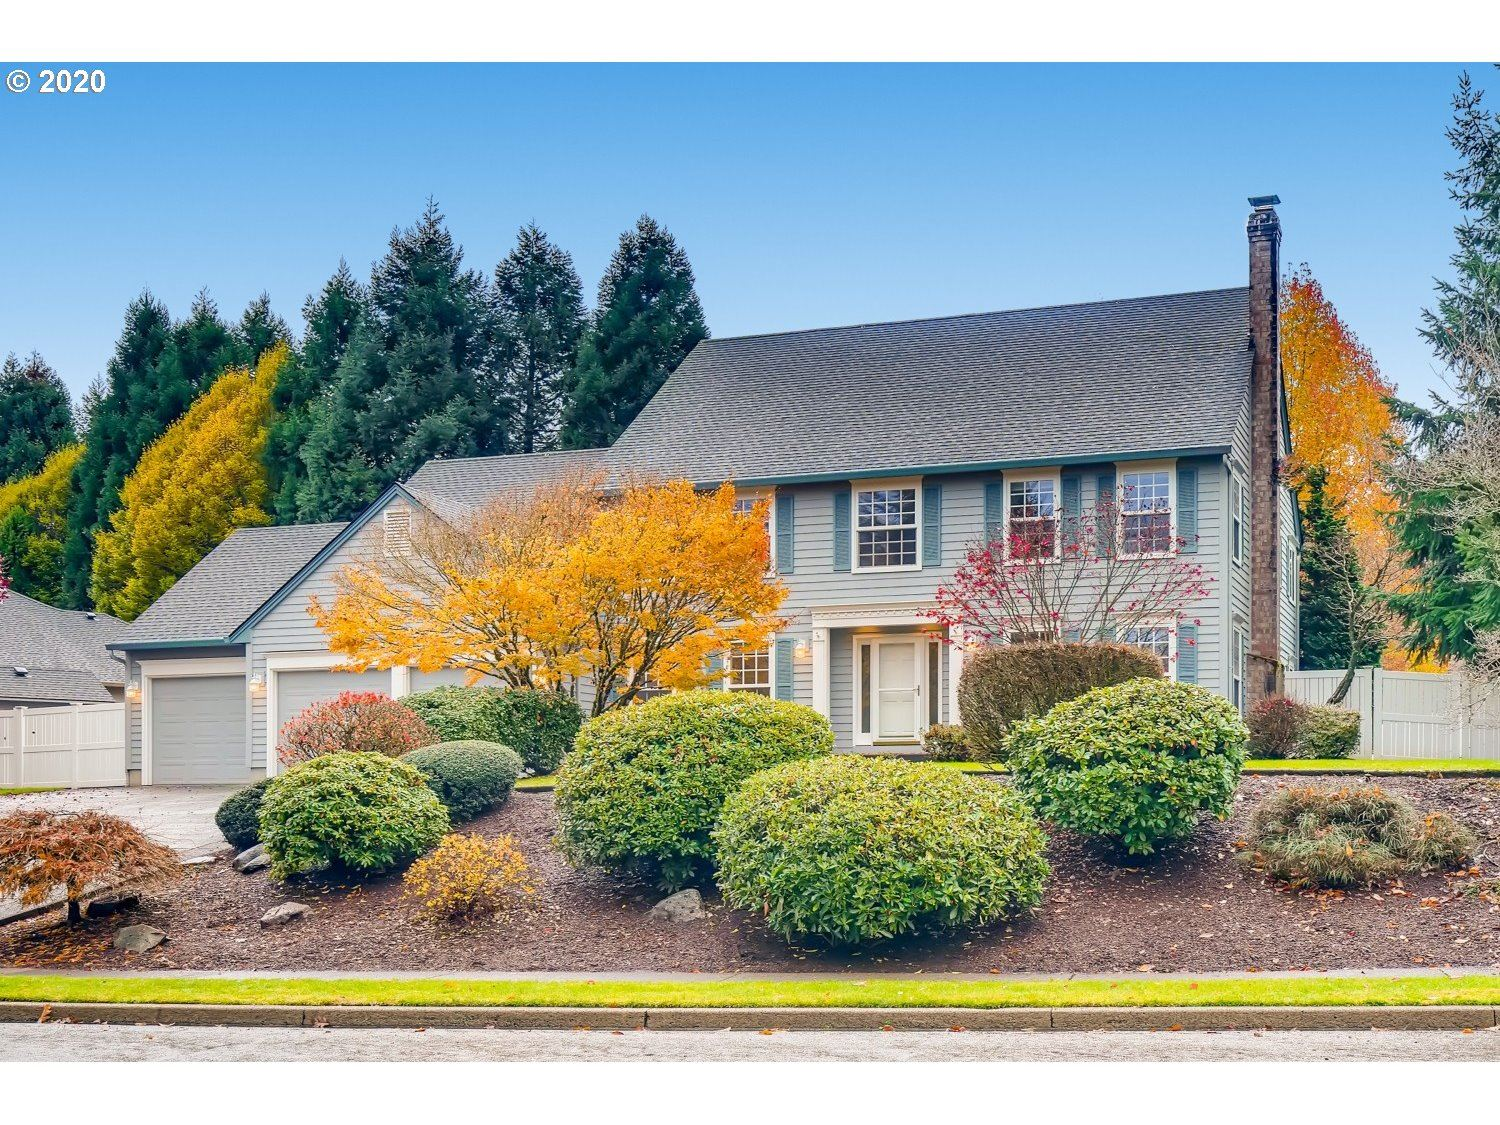 Photo for 4307 NE 142ND ST, Vancouver, WA 98686 (MLS # 20666080)